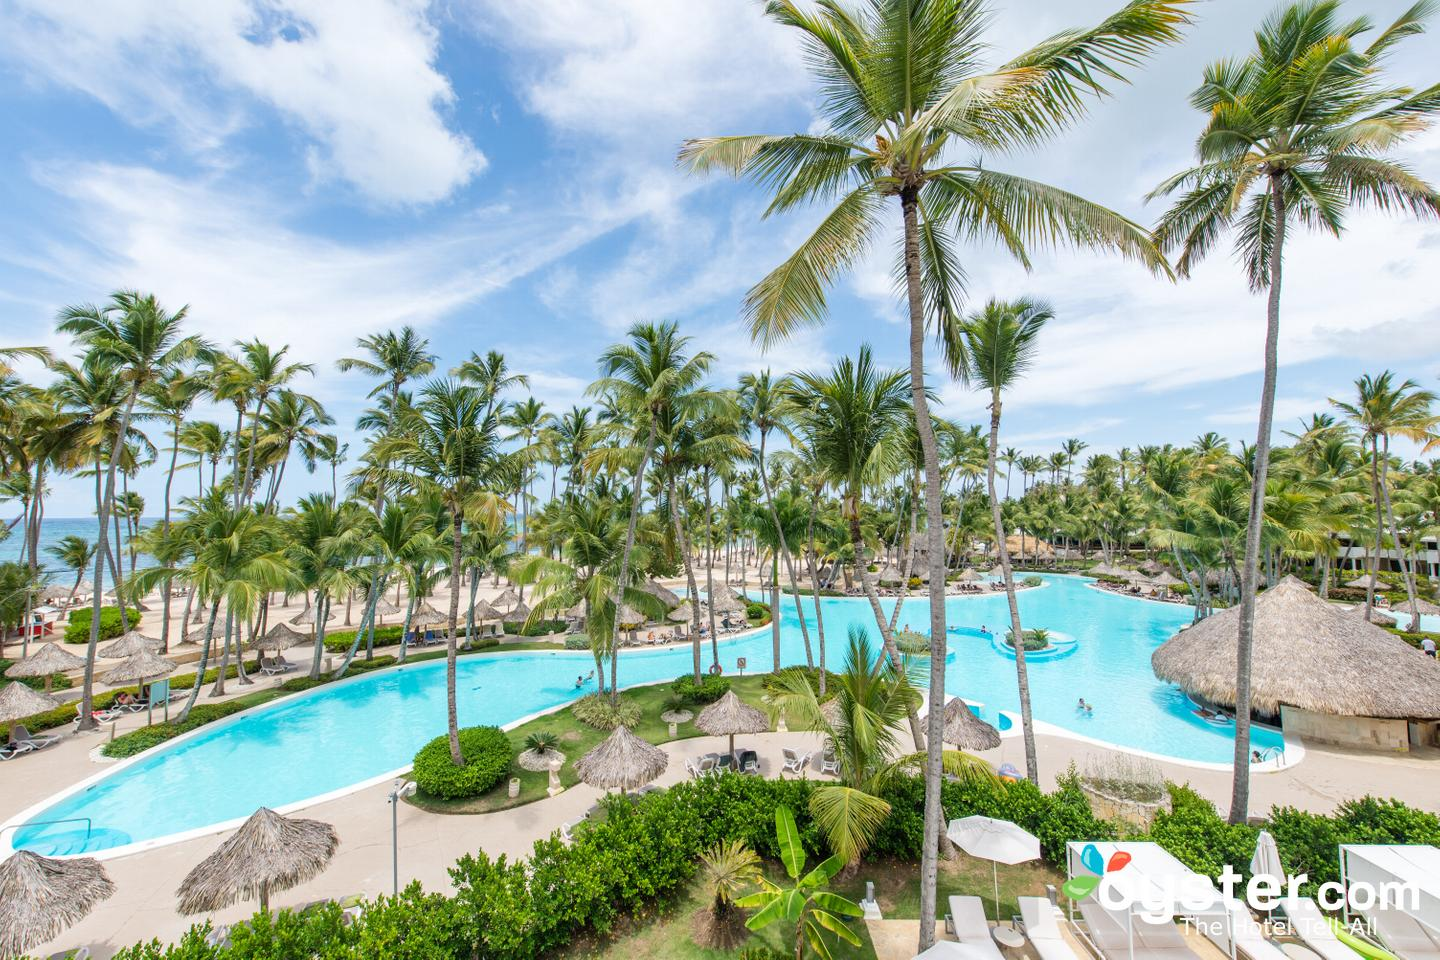 Melia Punta Cana Beach Resort Review: What To REALLY Expect If You Stay